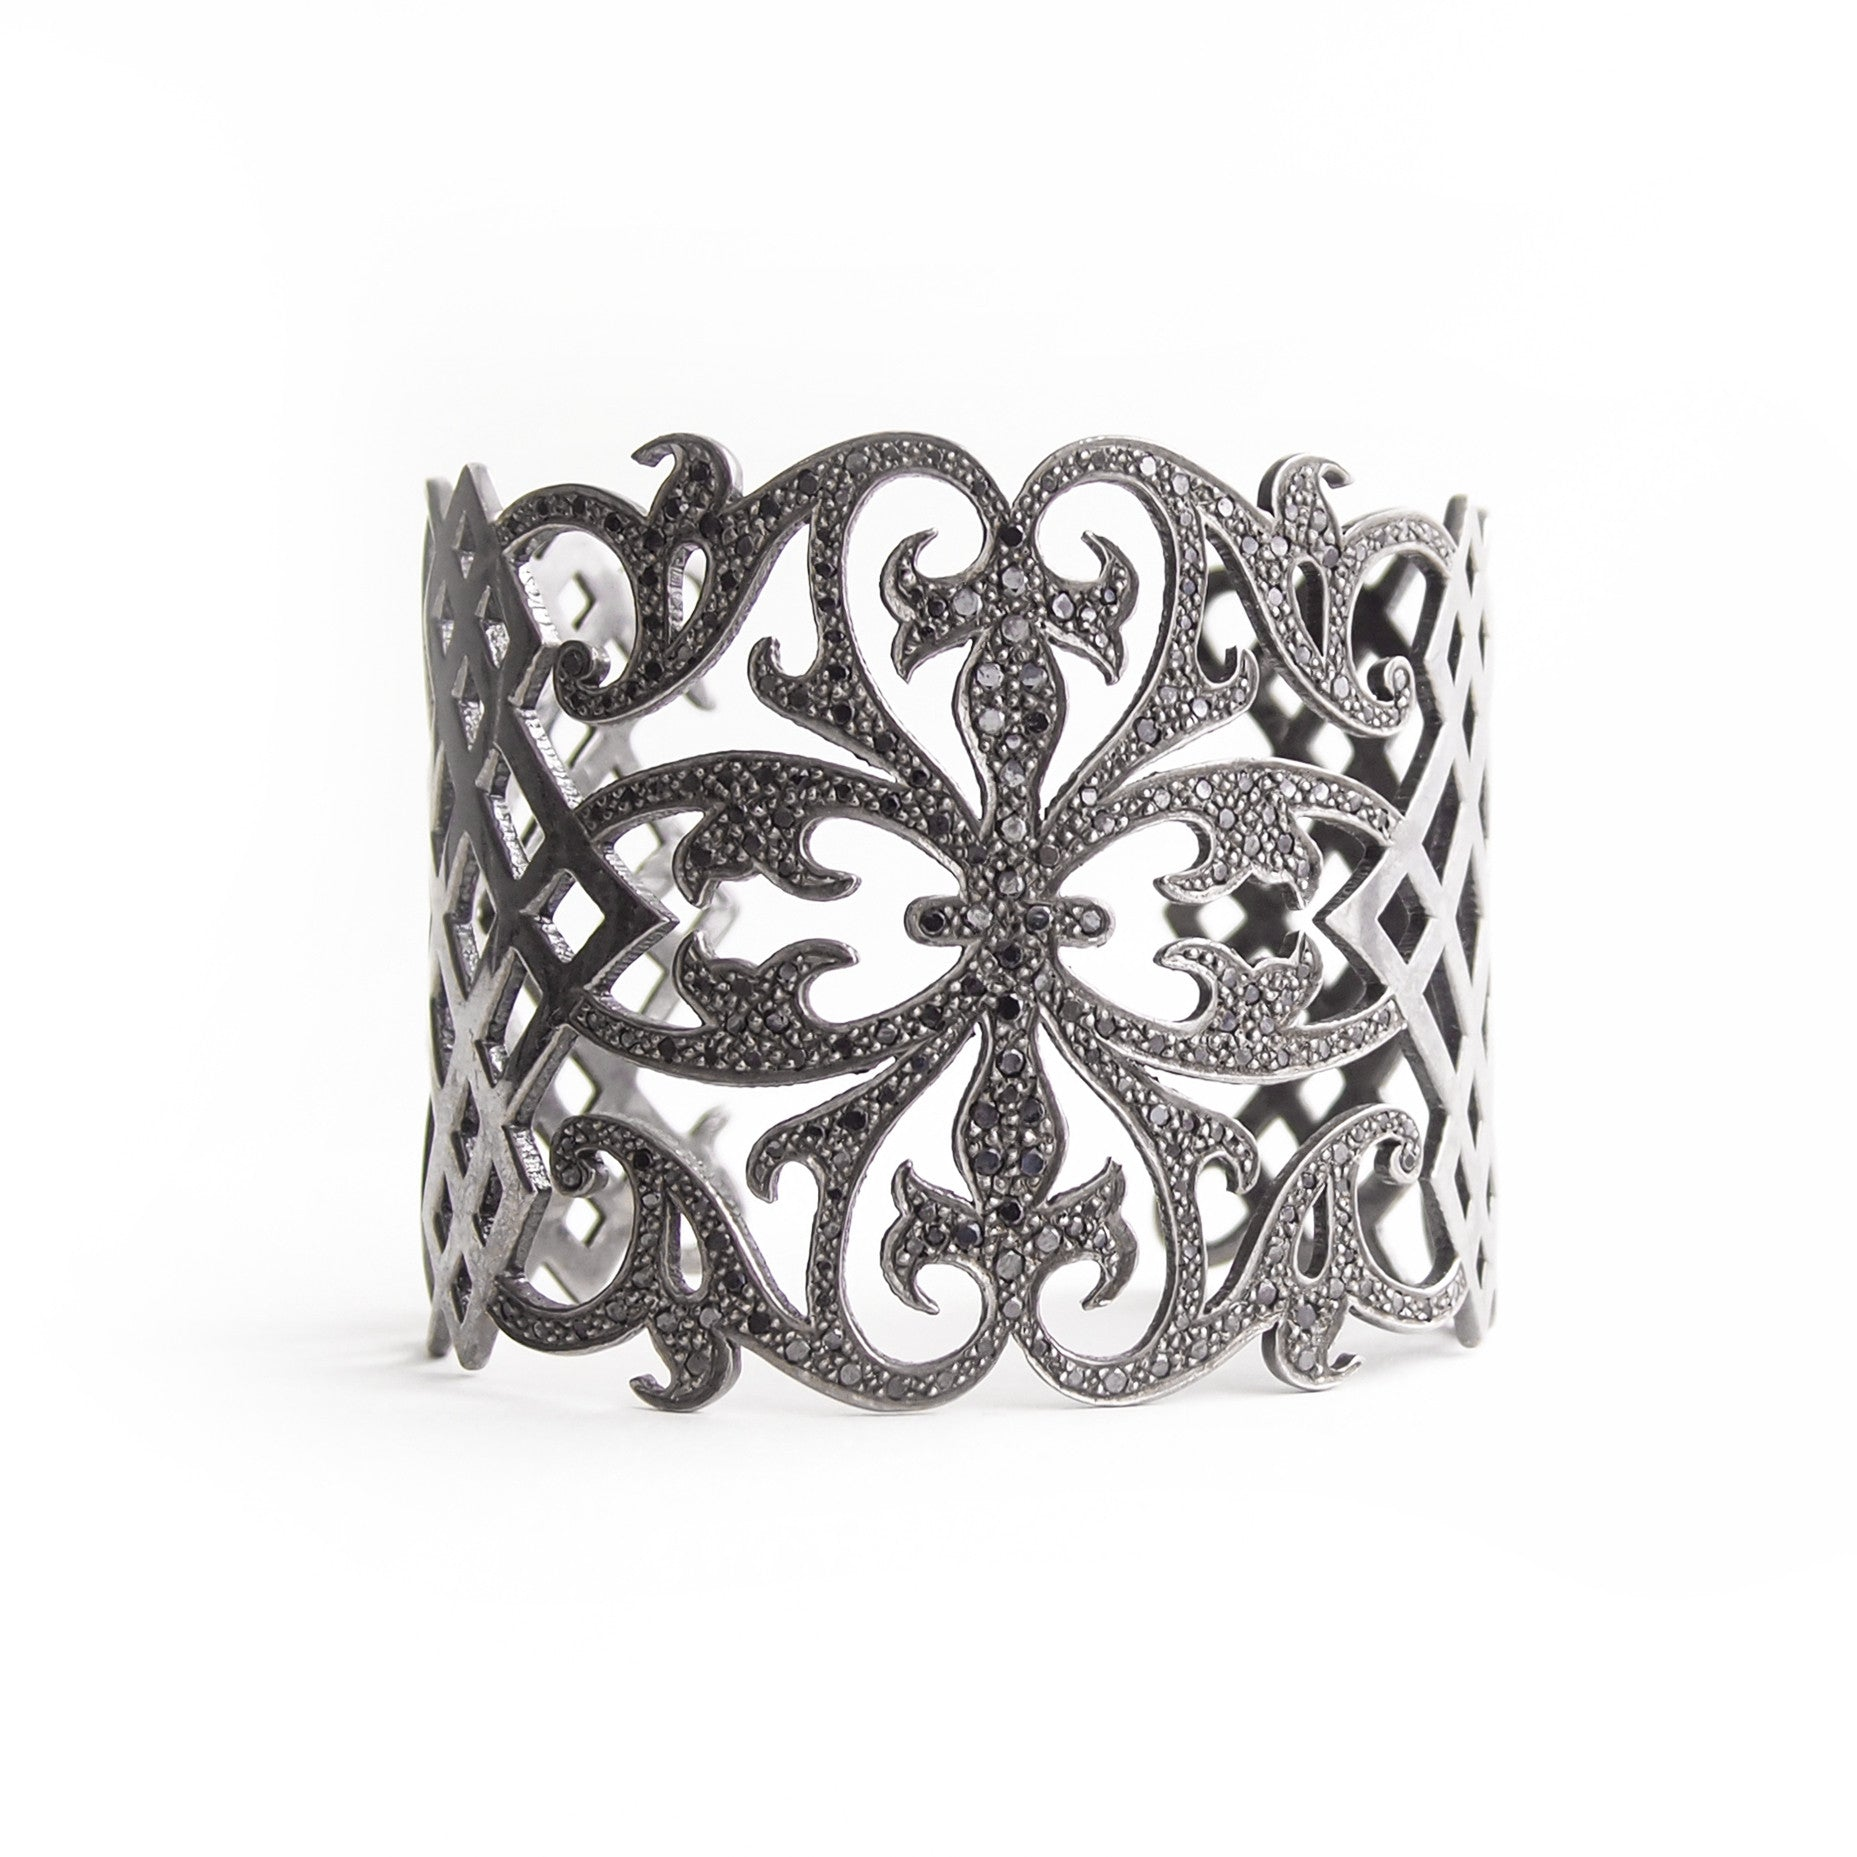 sterling silver plated in black rhodium with black pave diamonds arabesque cuff